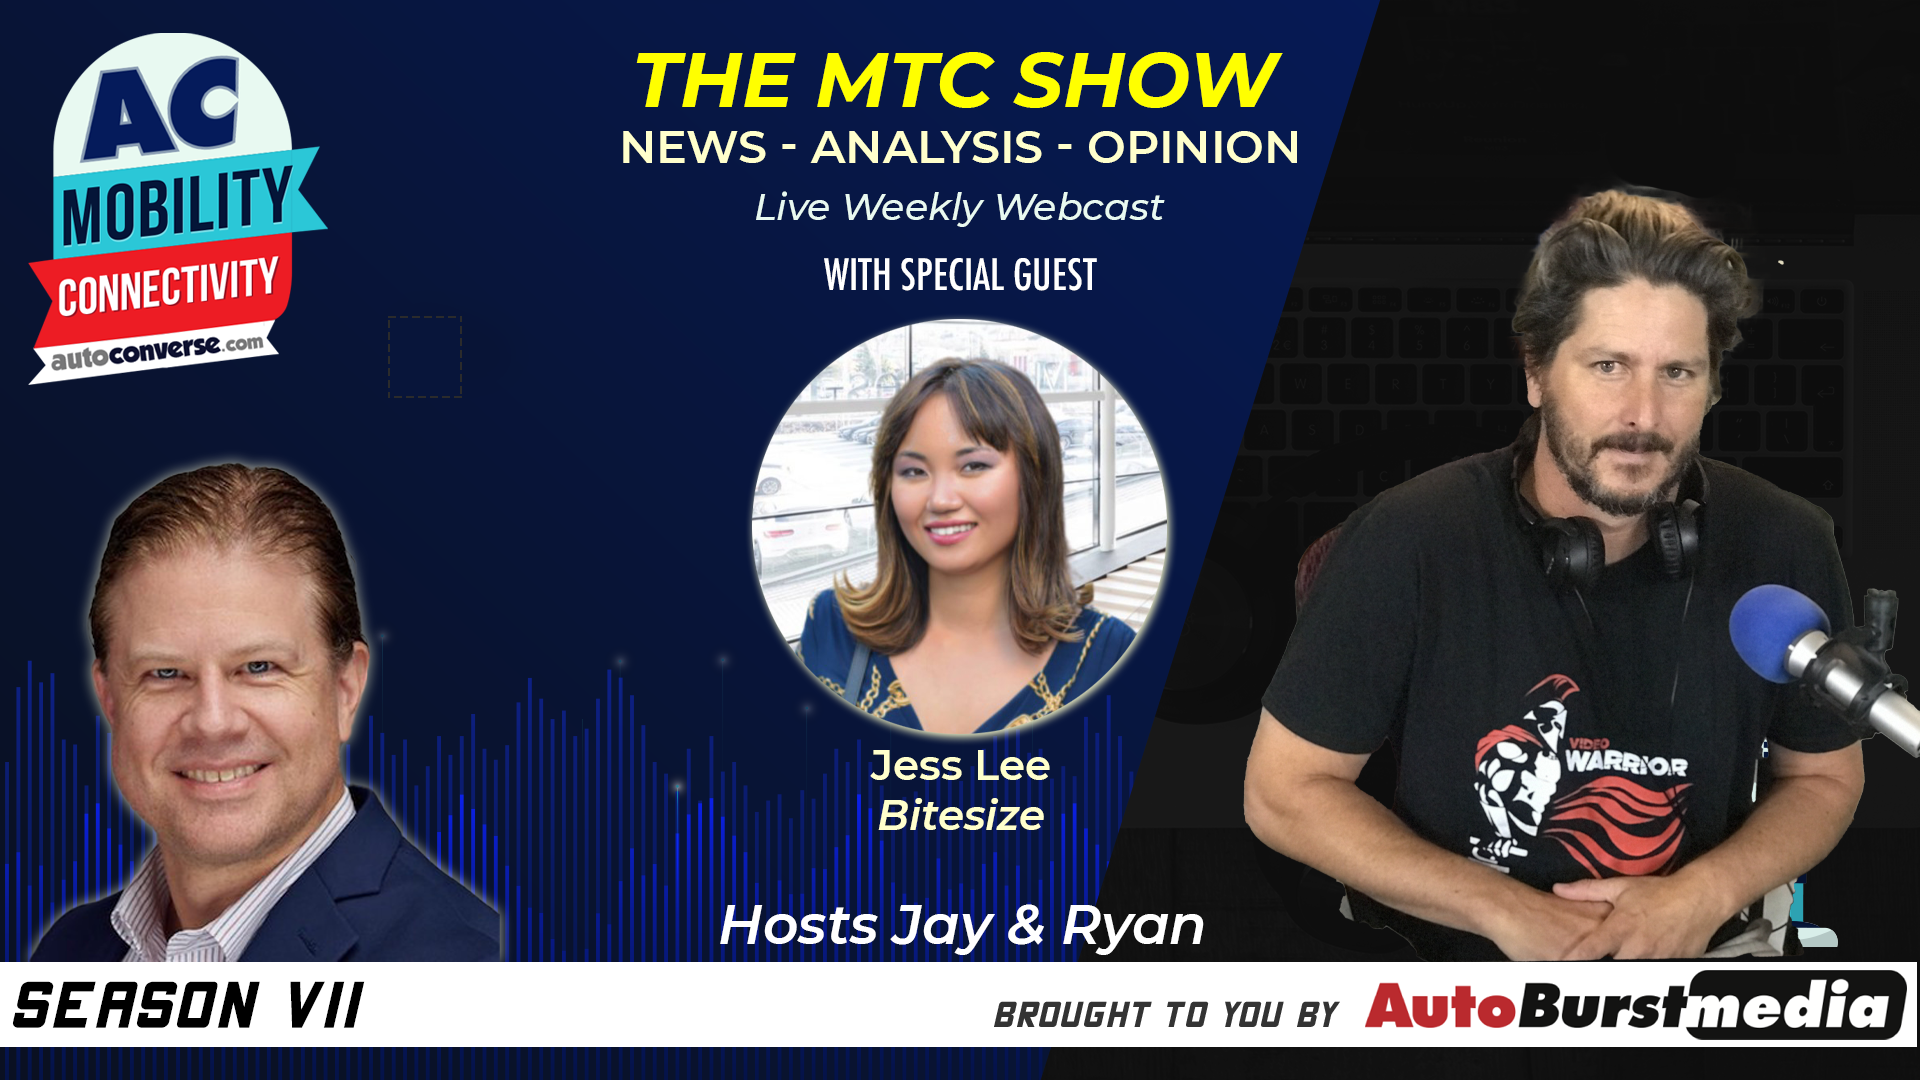 LIVE WED AUG 12. Apple Vertical Cinema, SMS Marketing in Auto Retail, and the Fate of Cars in Cities